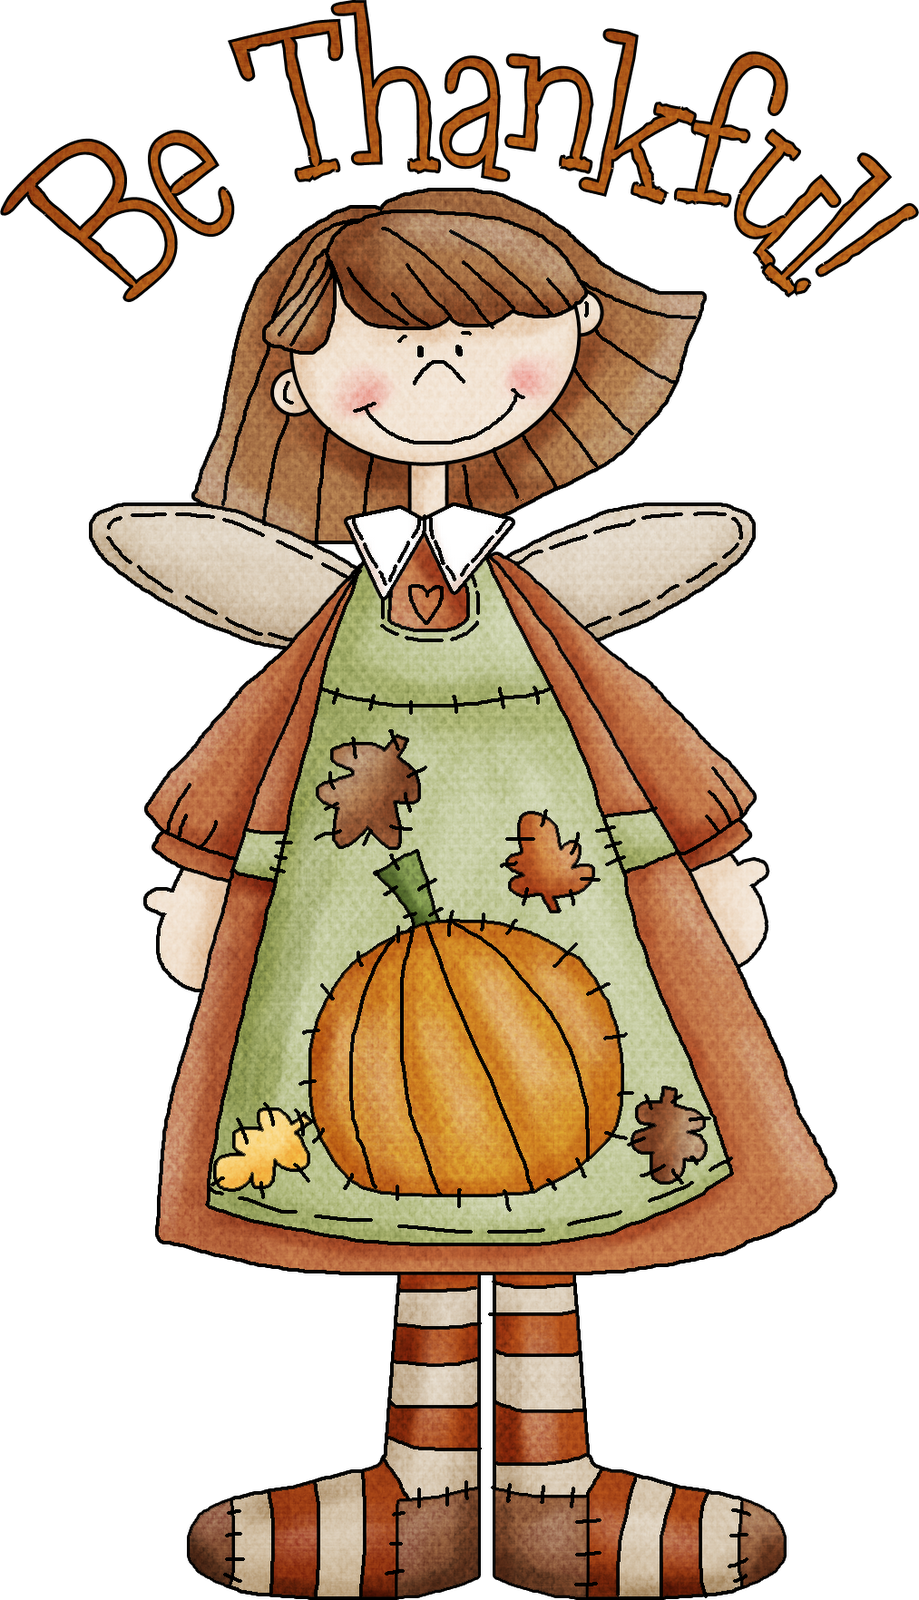 Thankful thanksgiving clipart jpg free stock Thanking God for everything! Enjoying my blessings with a thankful ... jpg free stock